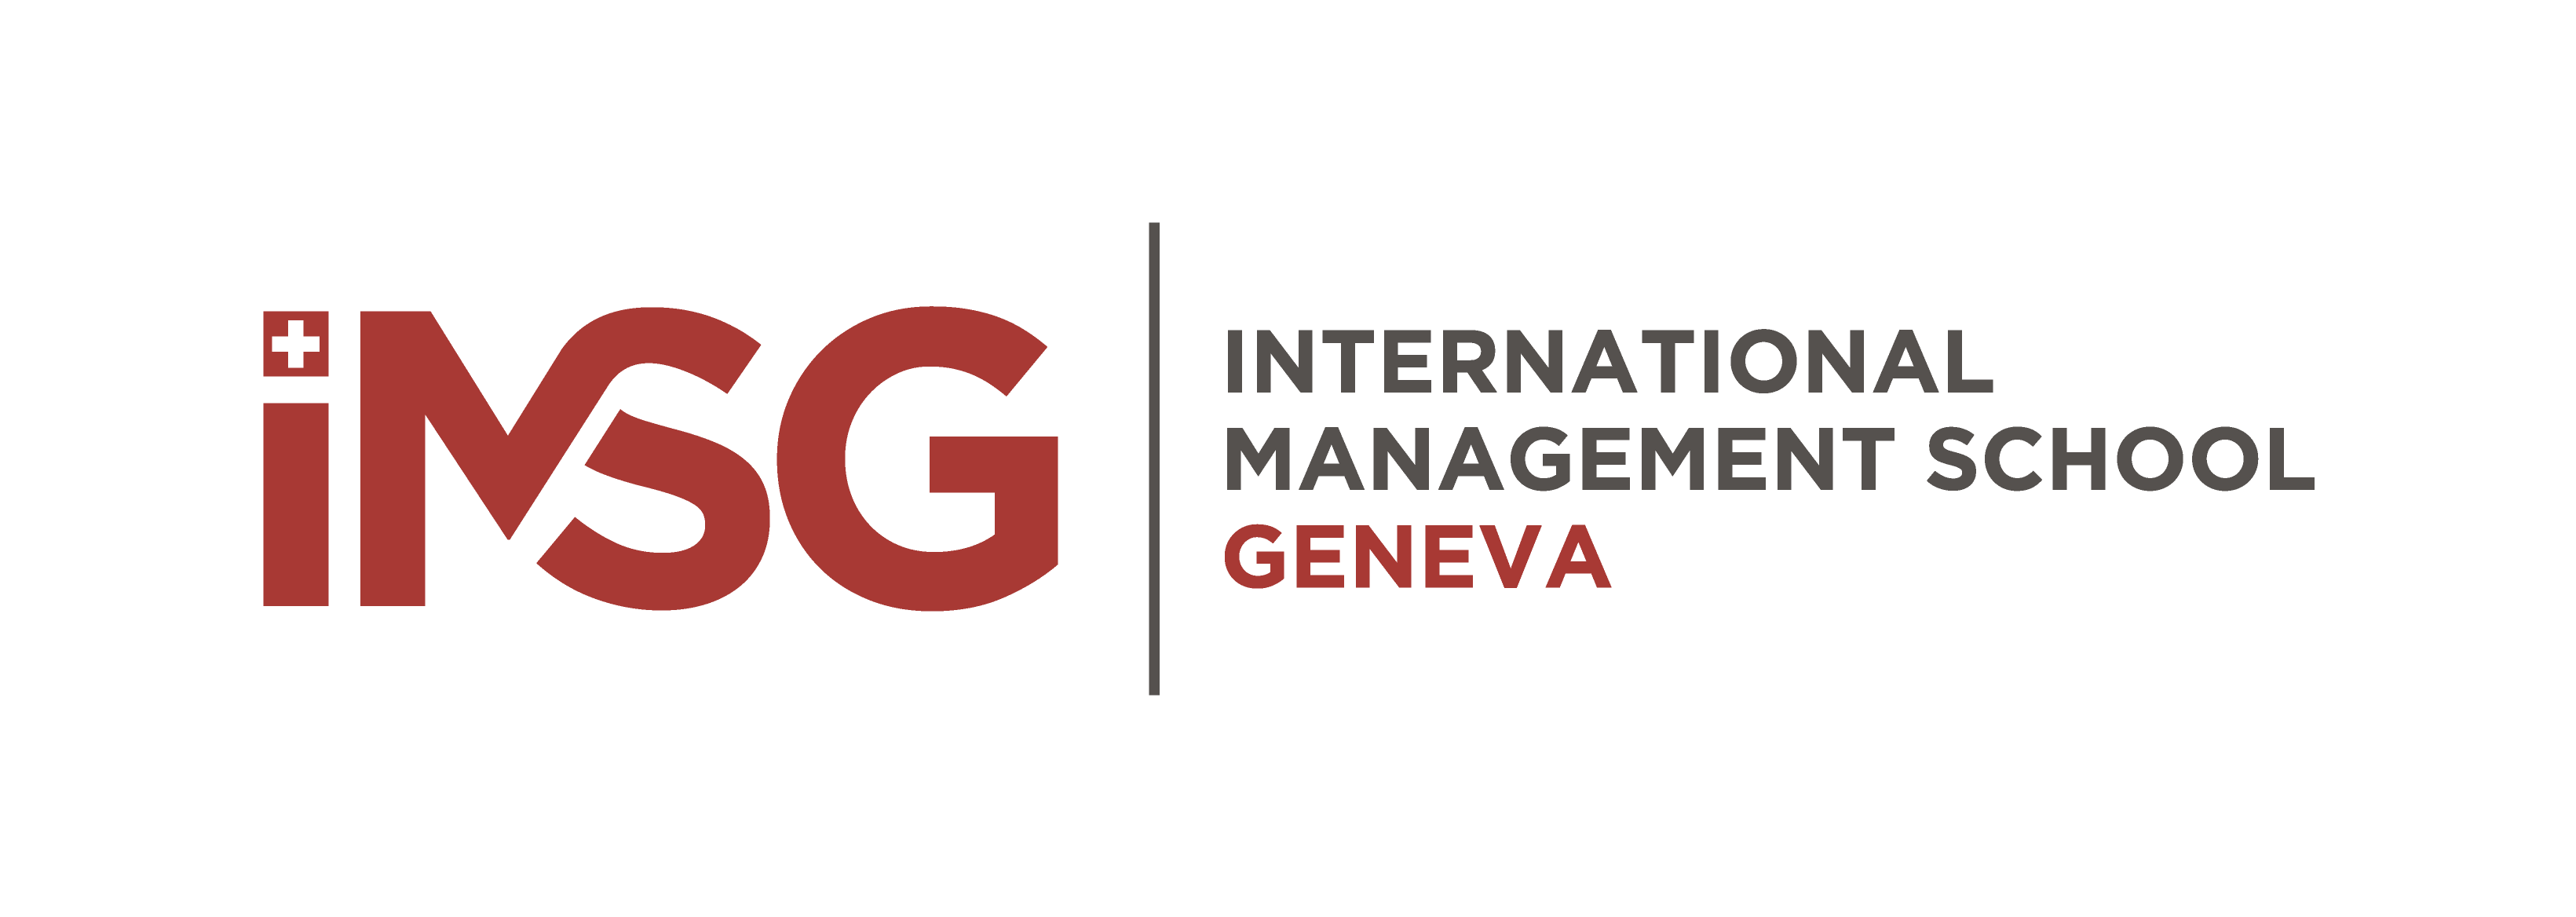 IMSG – International Management School Geneva